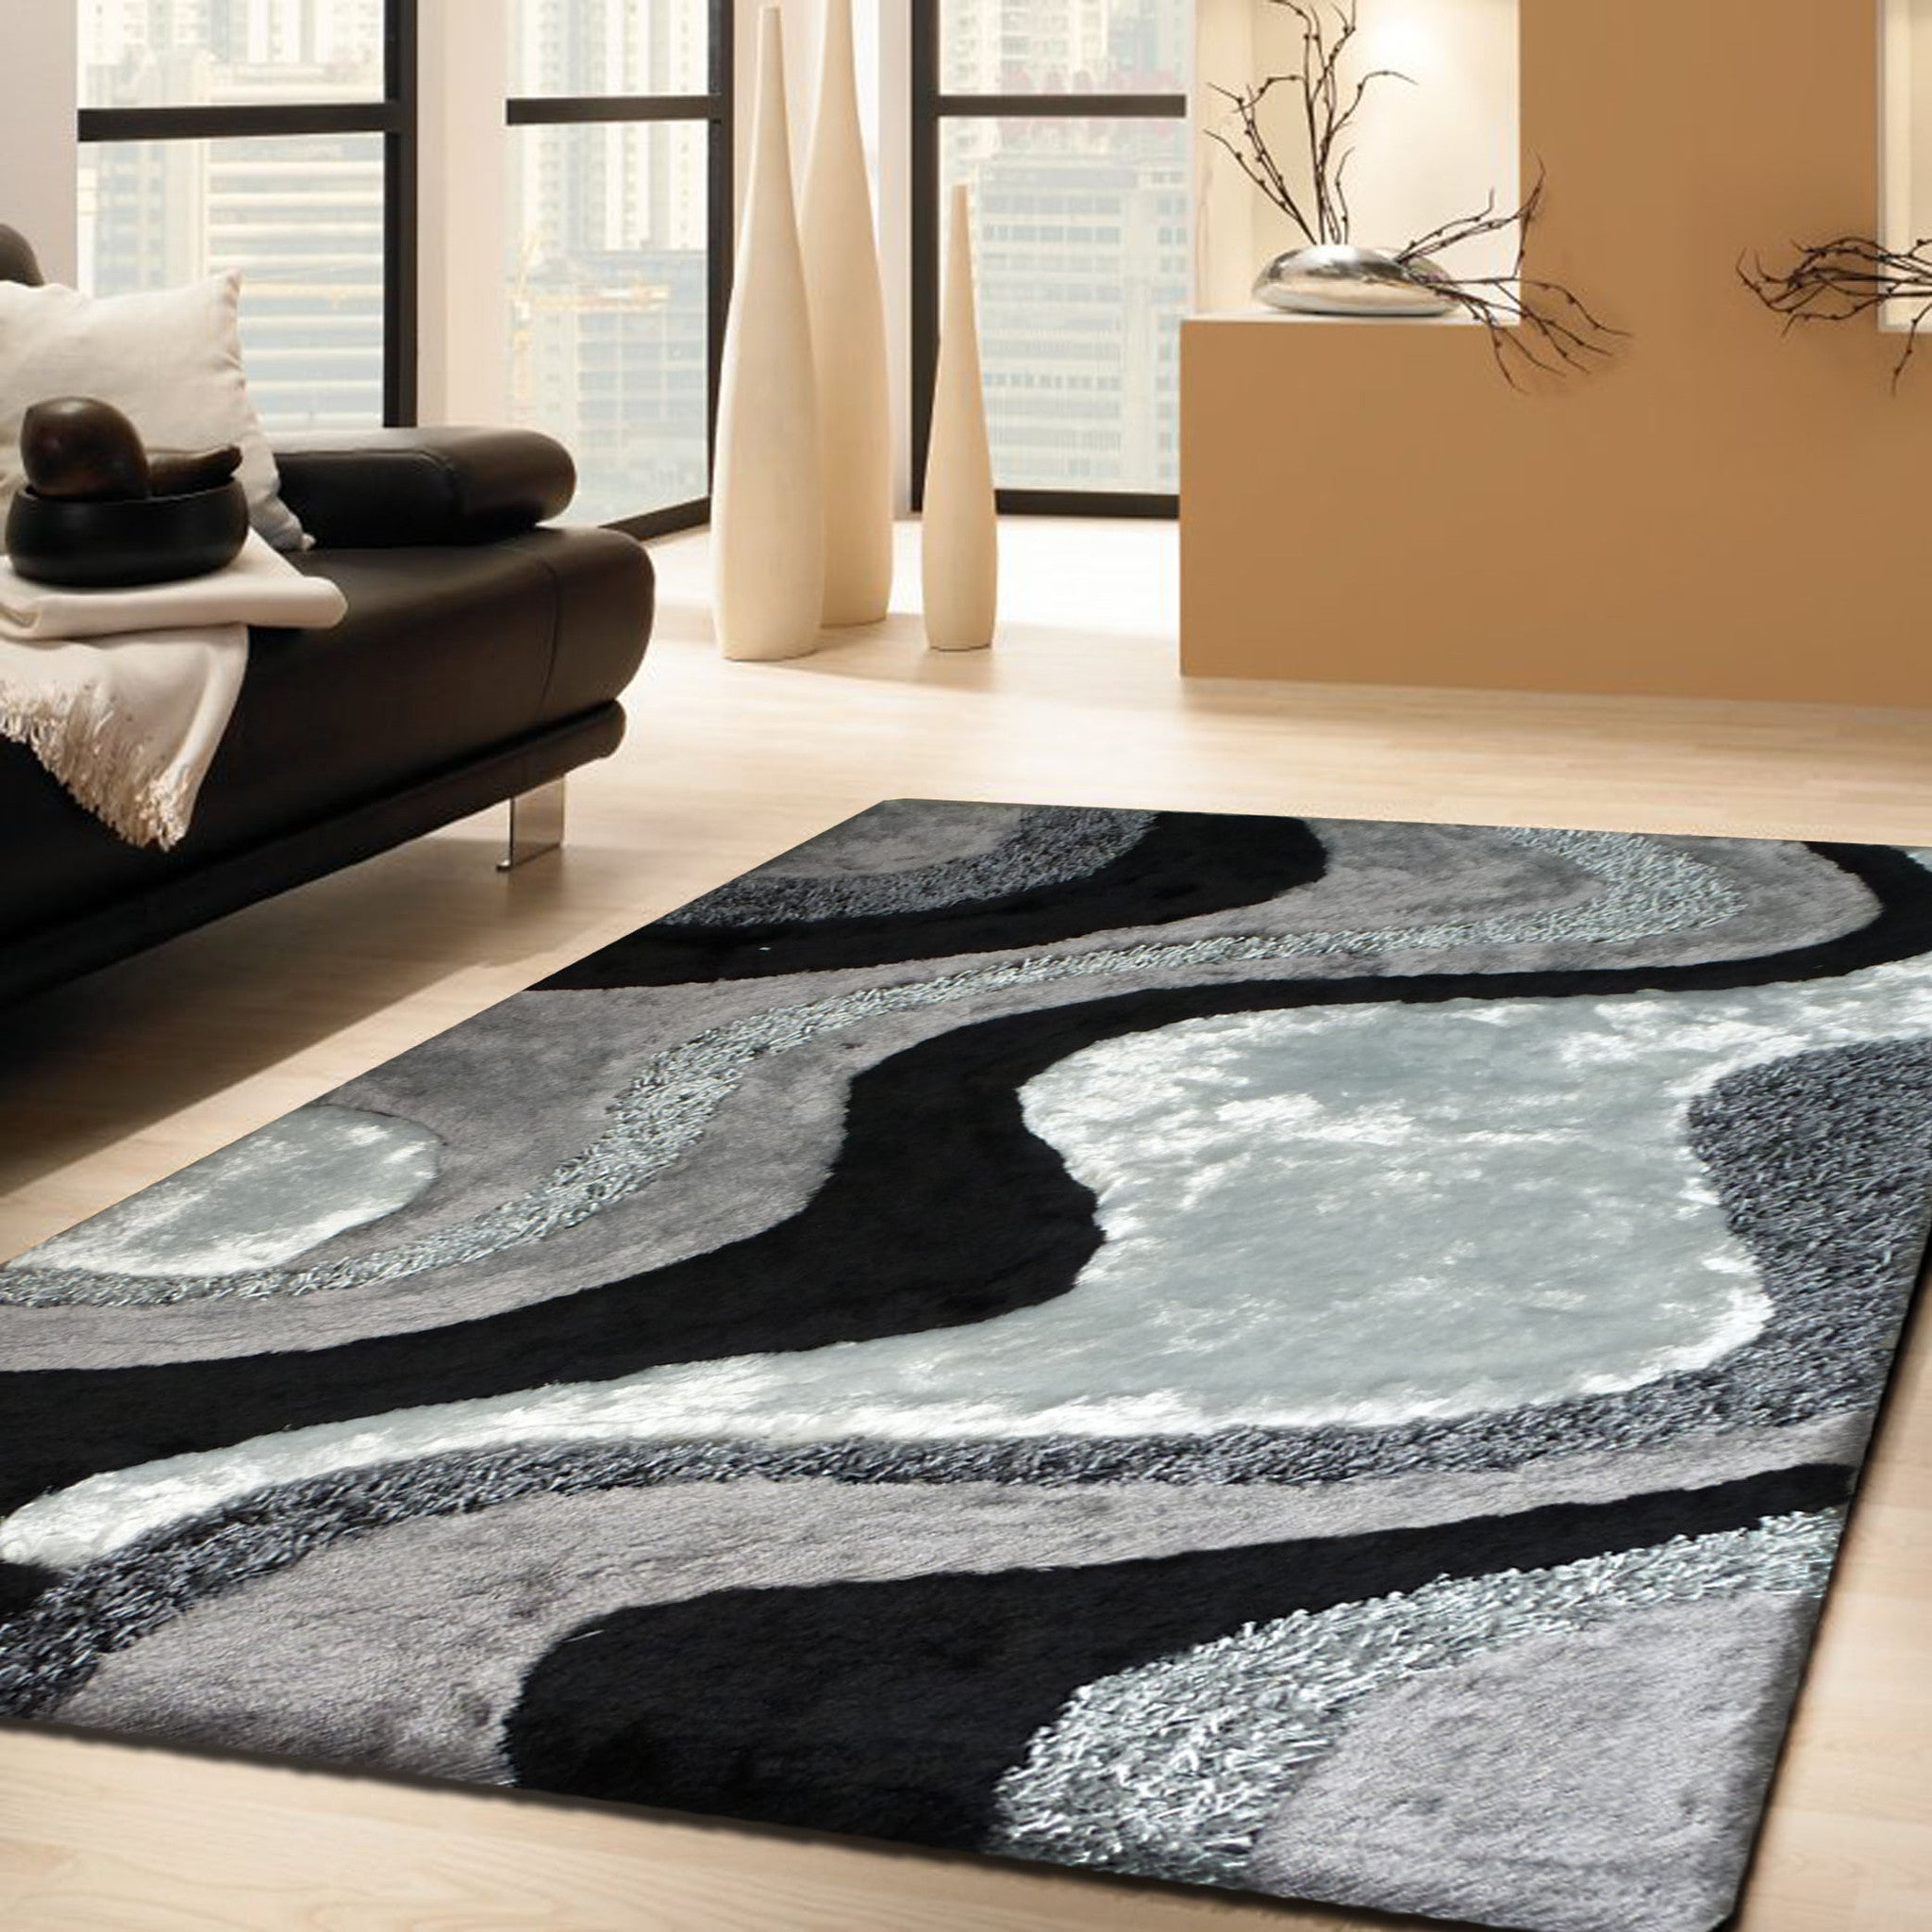 black grey wonderful rugs excellent of gray area ideas shag full patterned by rug agreeable size kids addiction red with white and